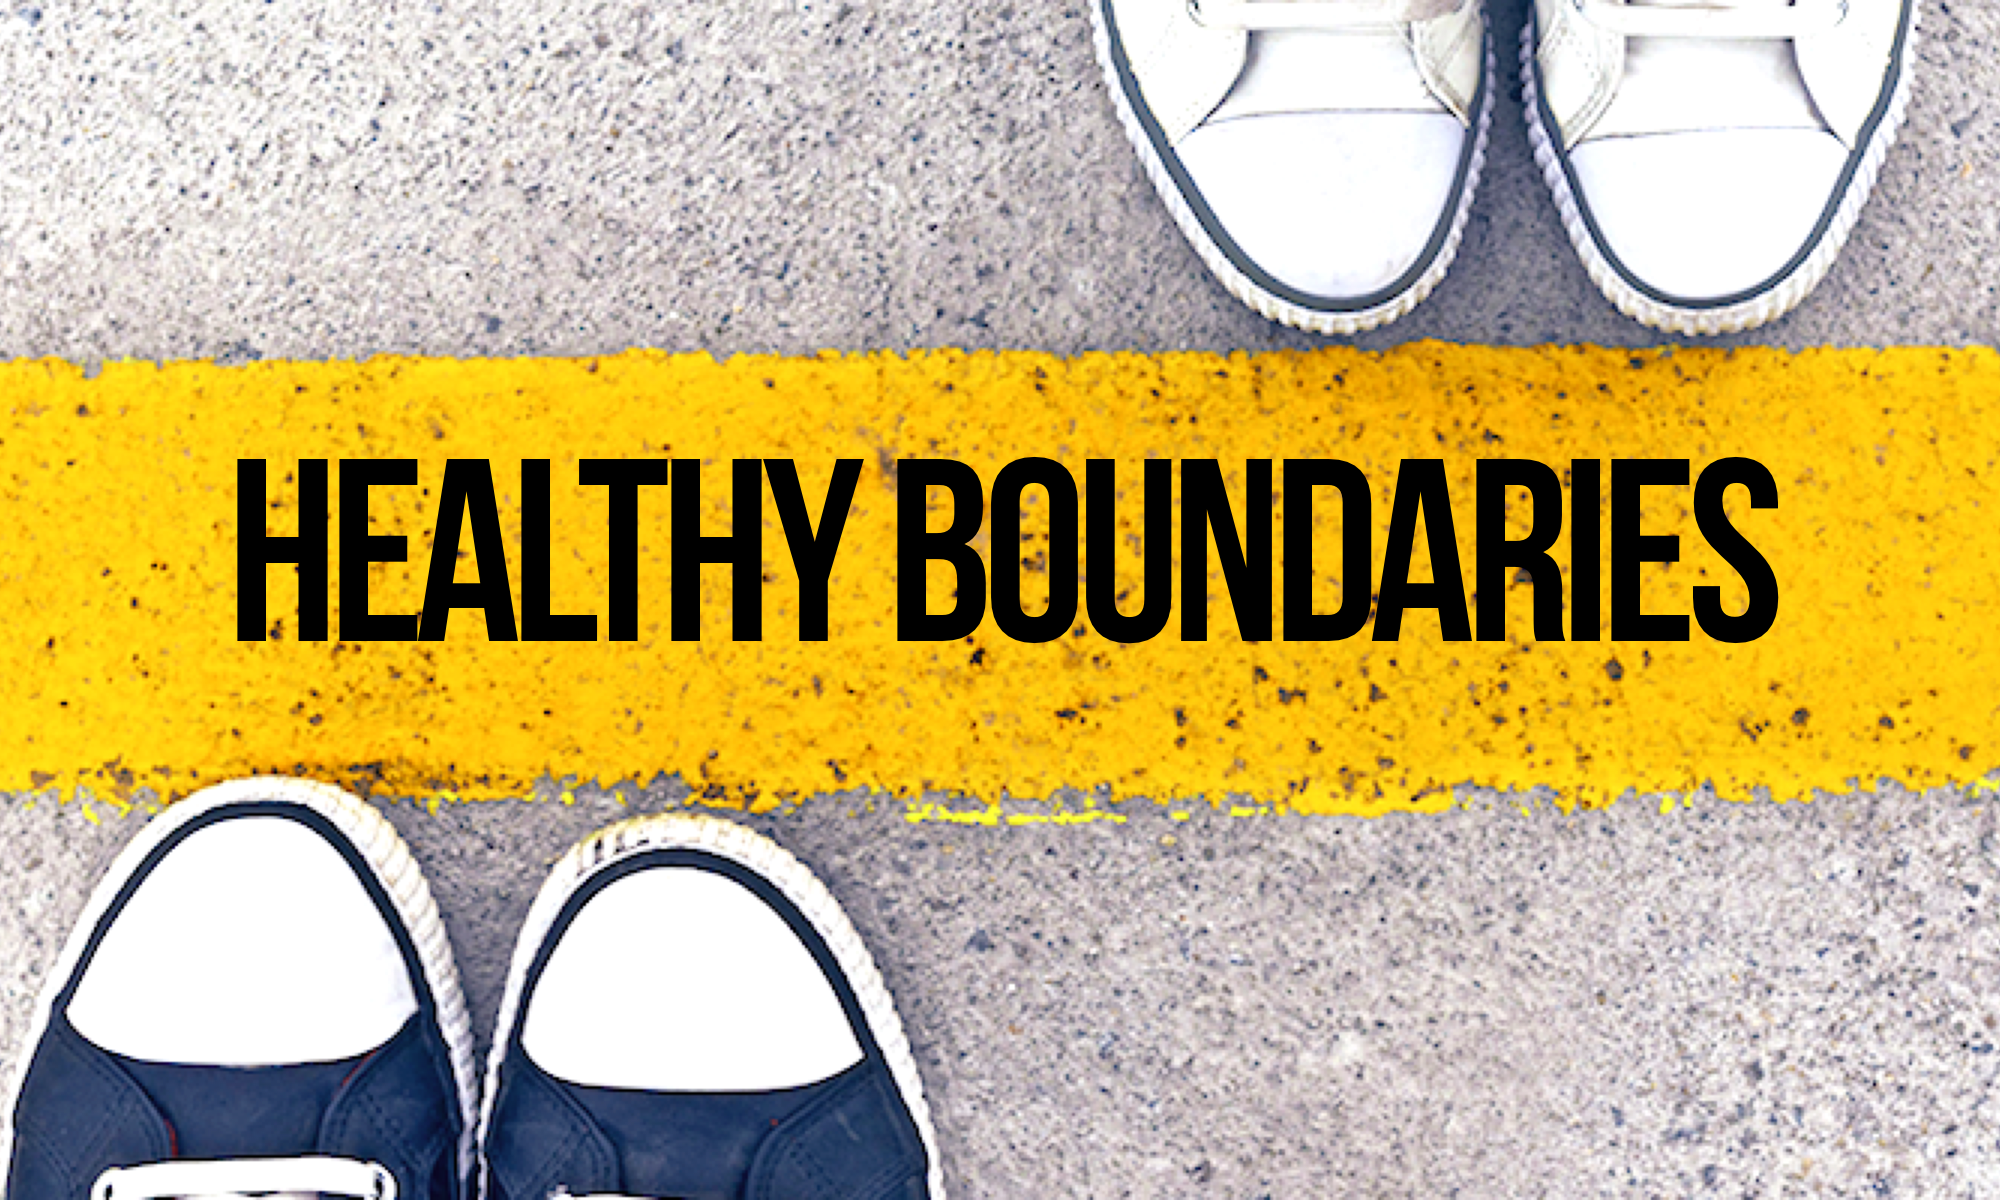 The Healthy Boundaries Series, I: Emotional Intimacy